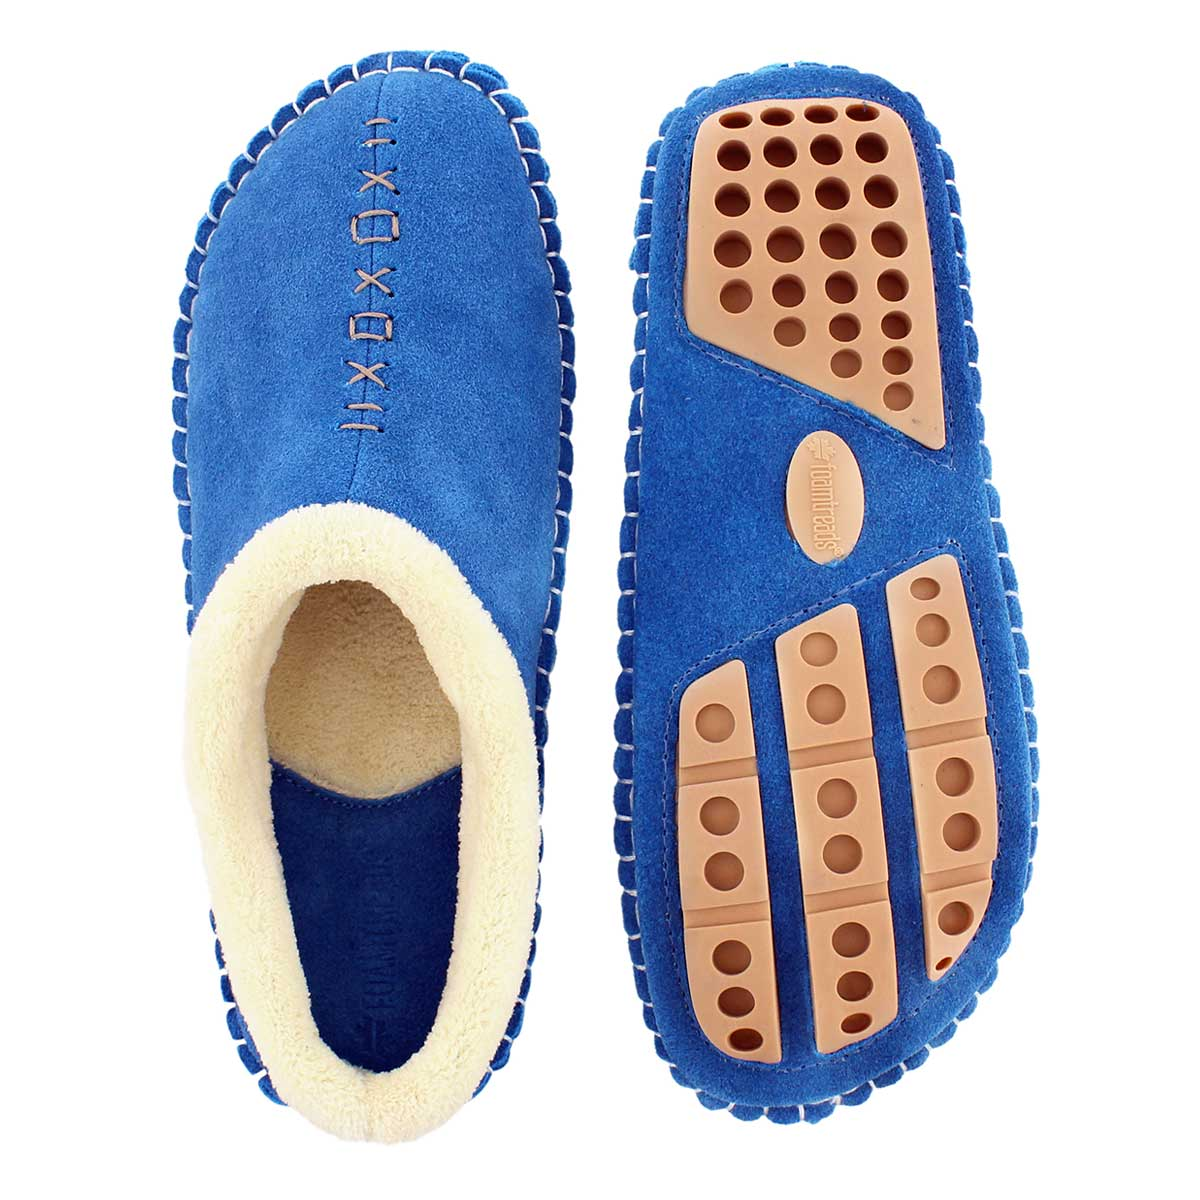 Lds Rosa sky blue closed back slipper